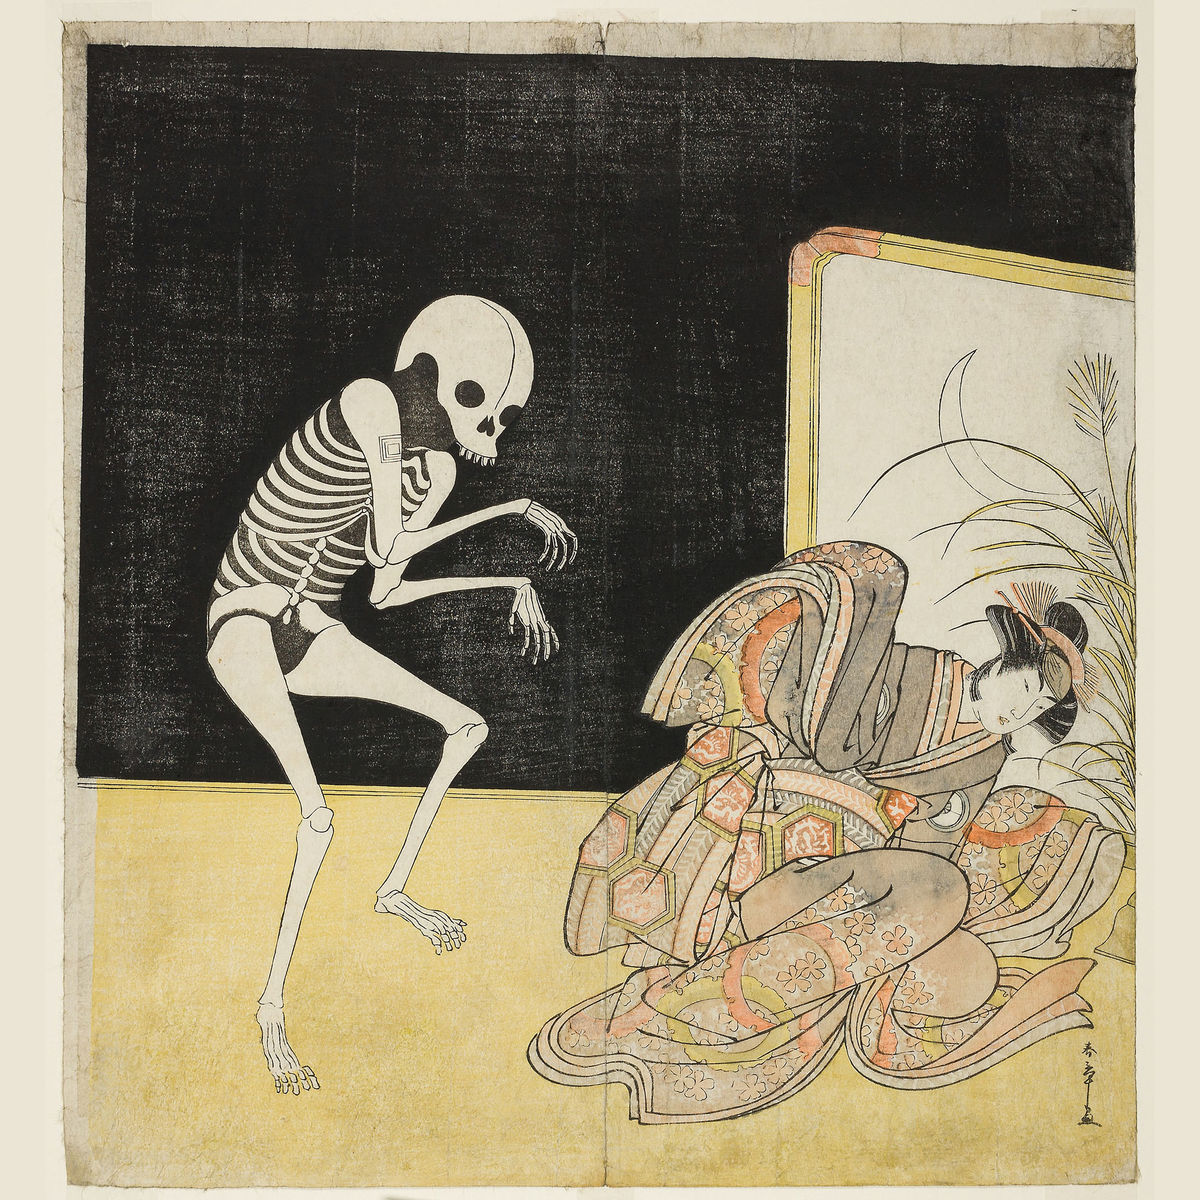 Actor Ichikawa Danjuro V As A Skeleton and Iwai Hanshiro IV as Princess Sakura